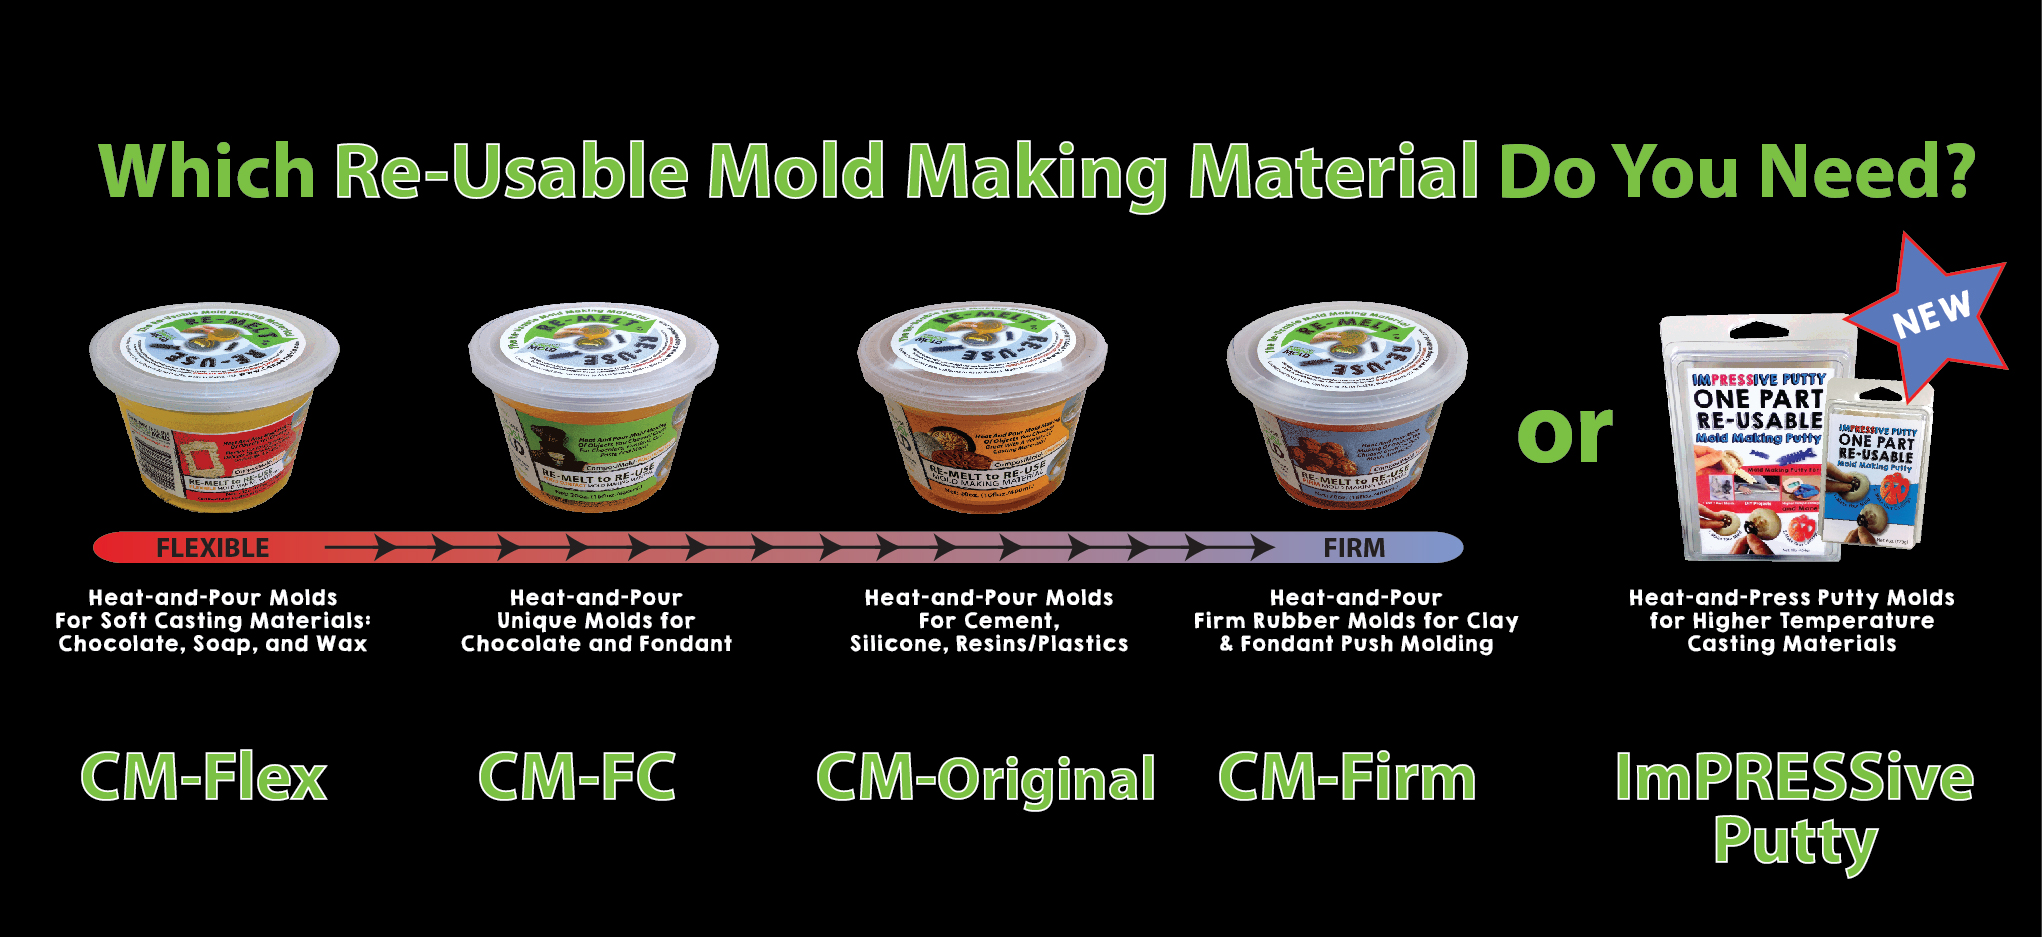 Re-usable Mold Making Options